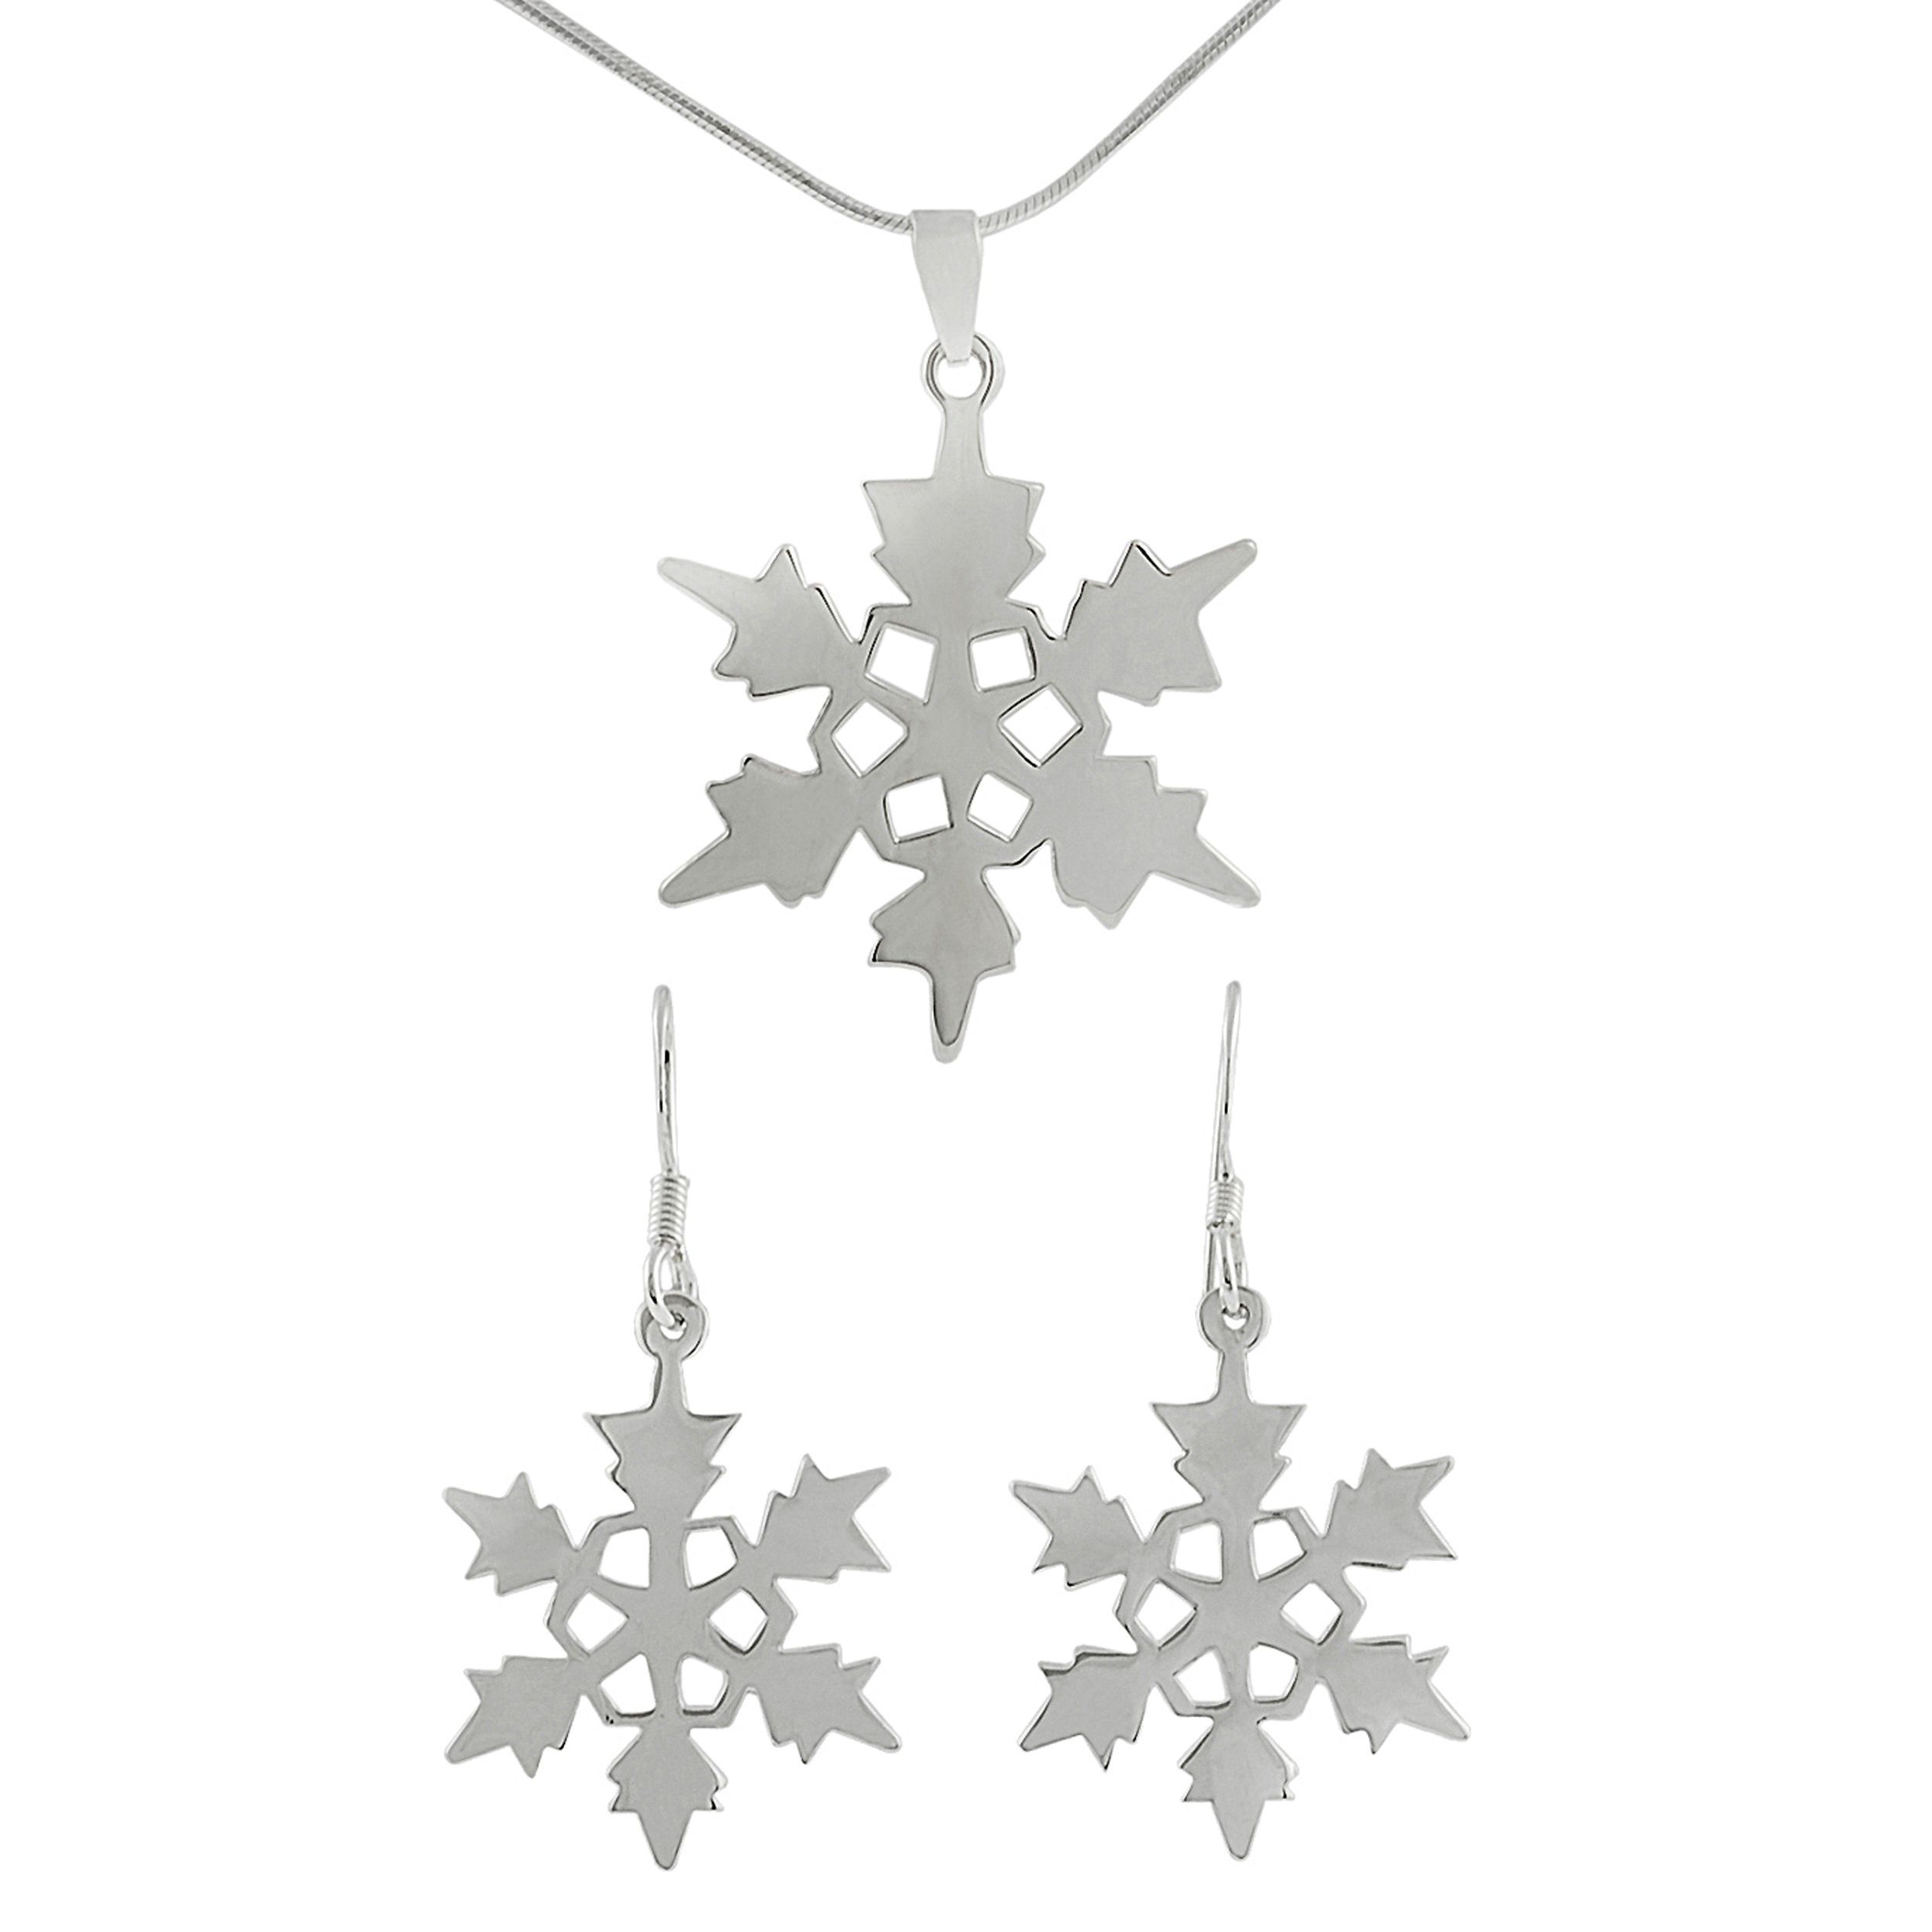 Journee Collection Sterling Silver Snowflake Earrings/ Necklace Set, Women's